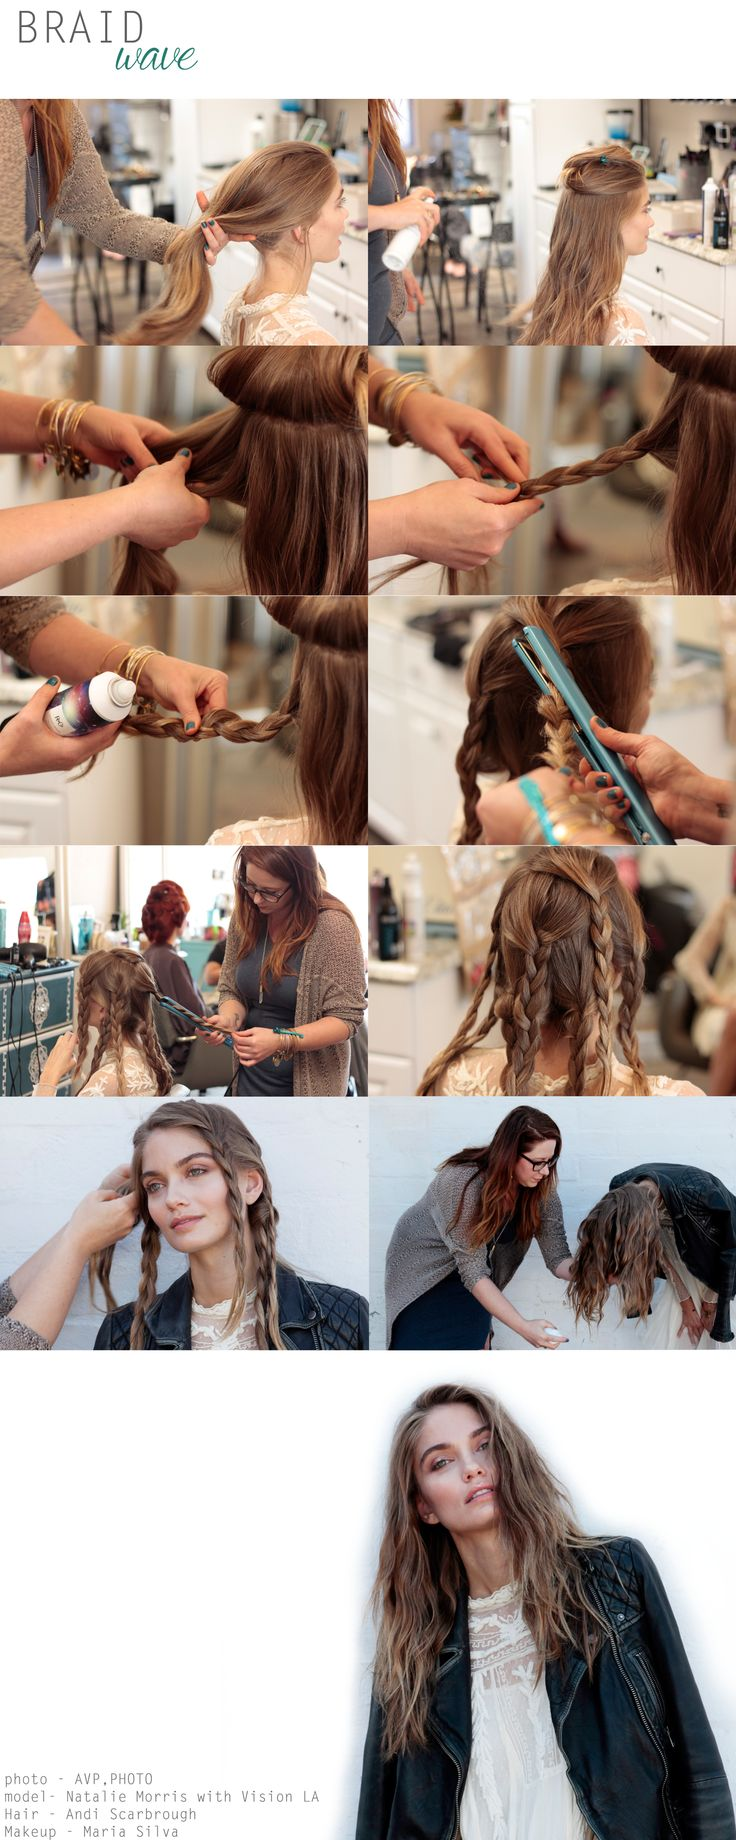 How-to for easy messy beachy waves using braids, texture spray and a flat iron. Skip the heat and sleep in these braids to wake up like a mermaid!